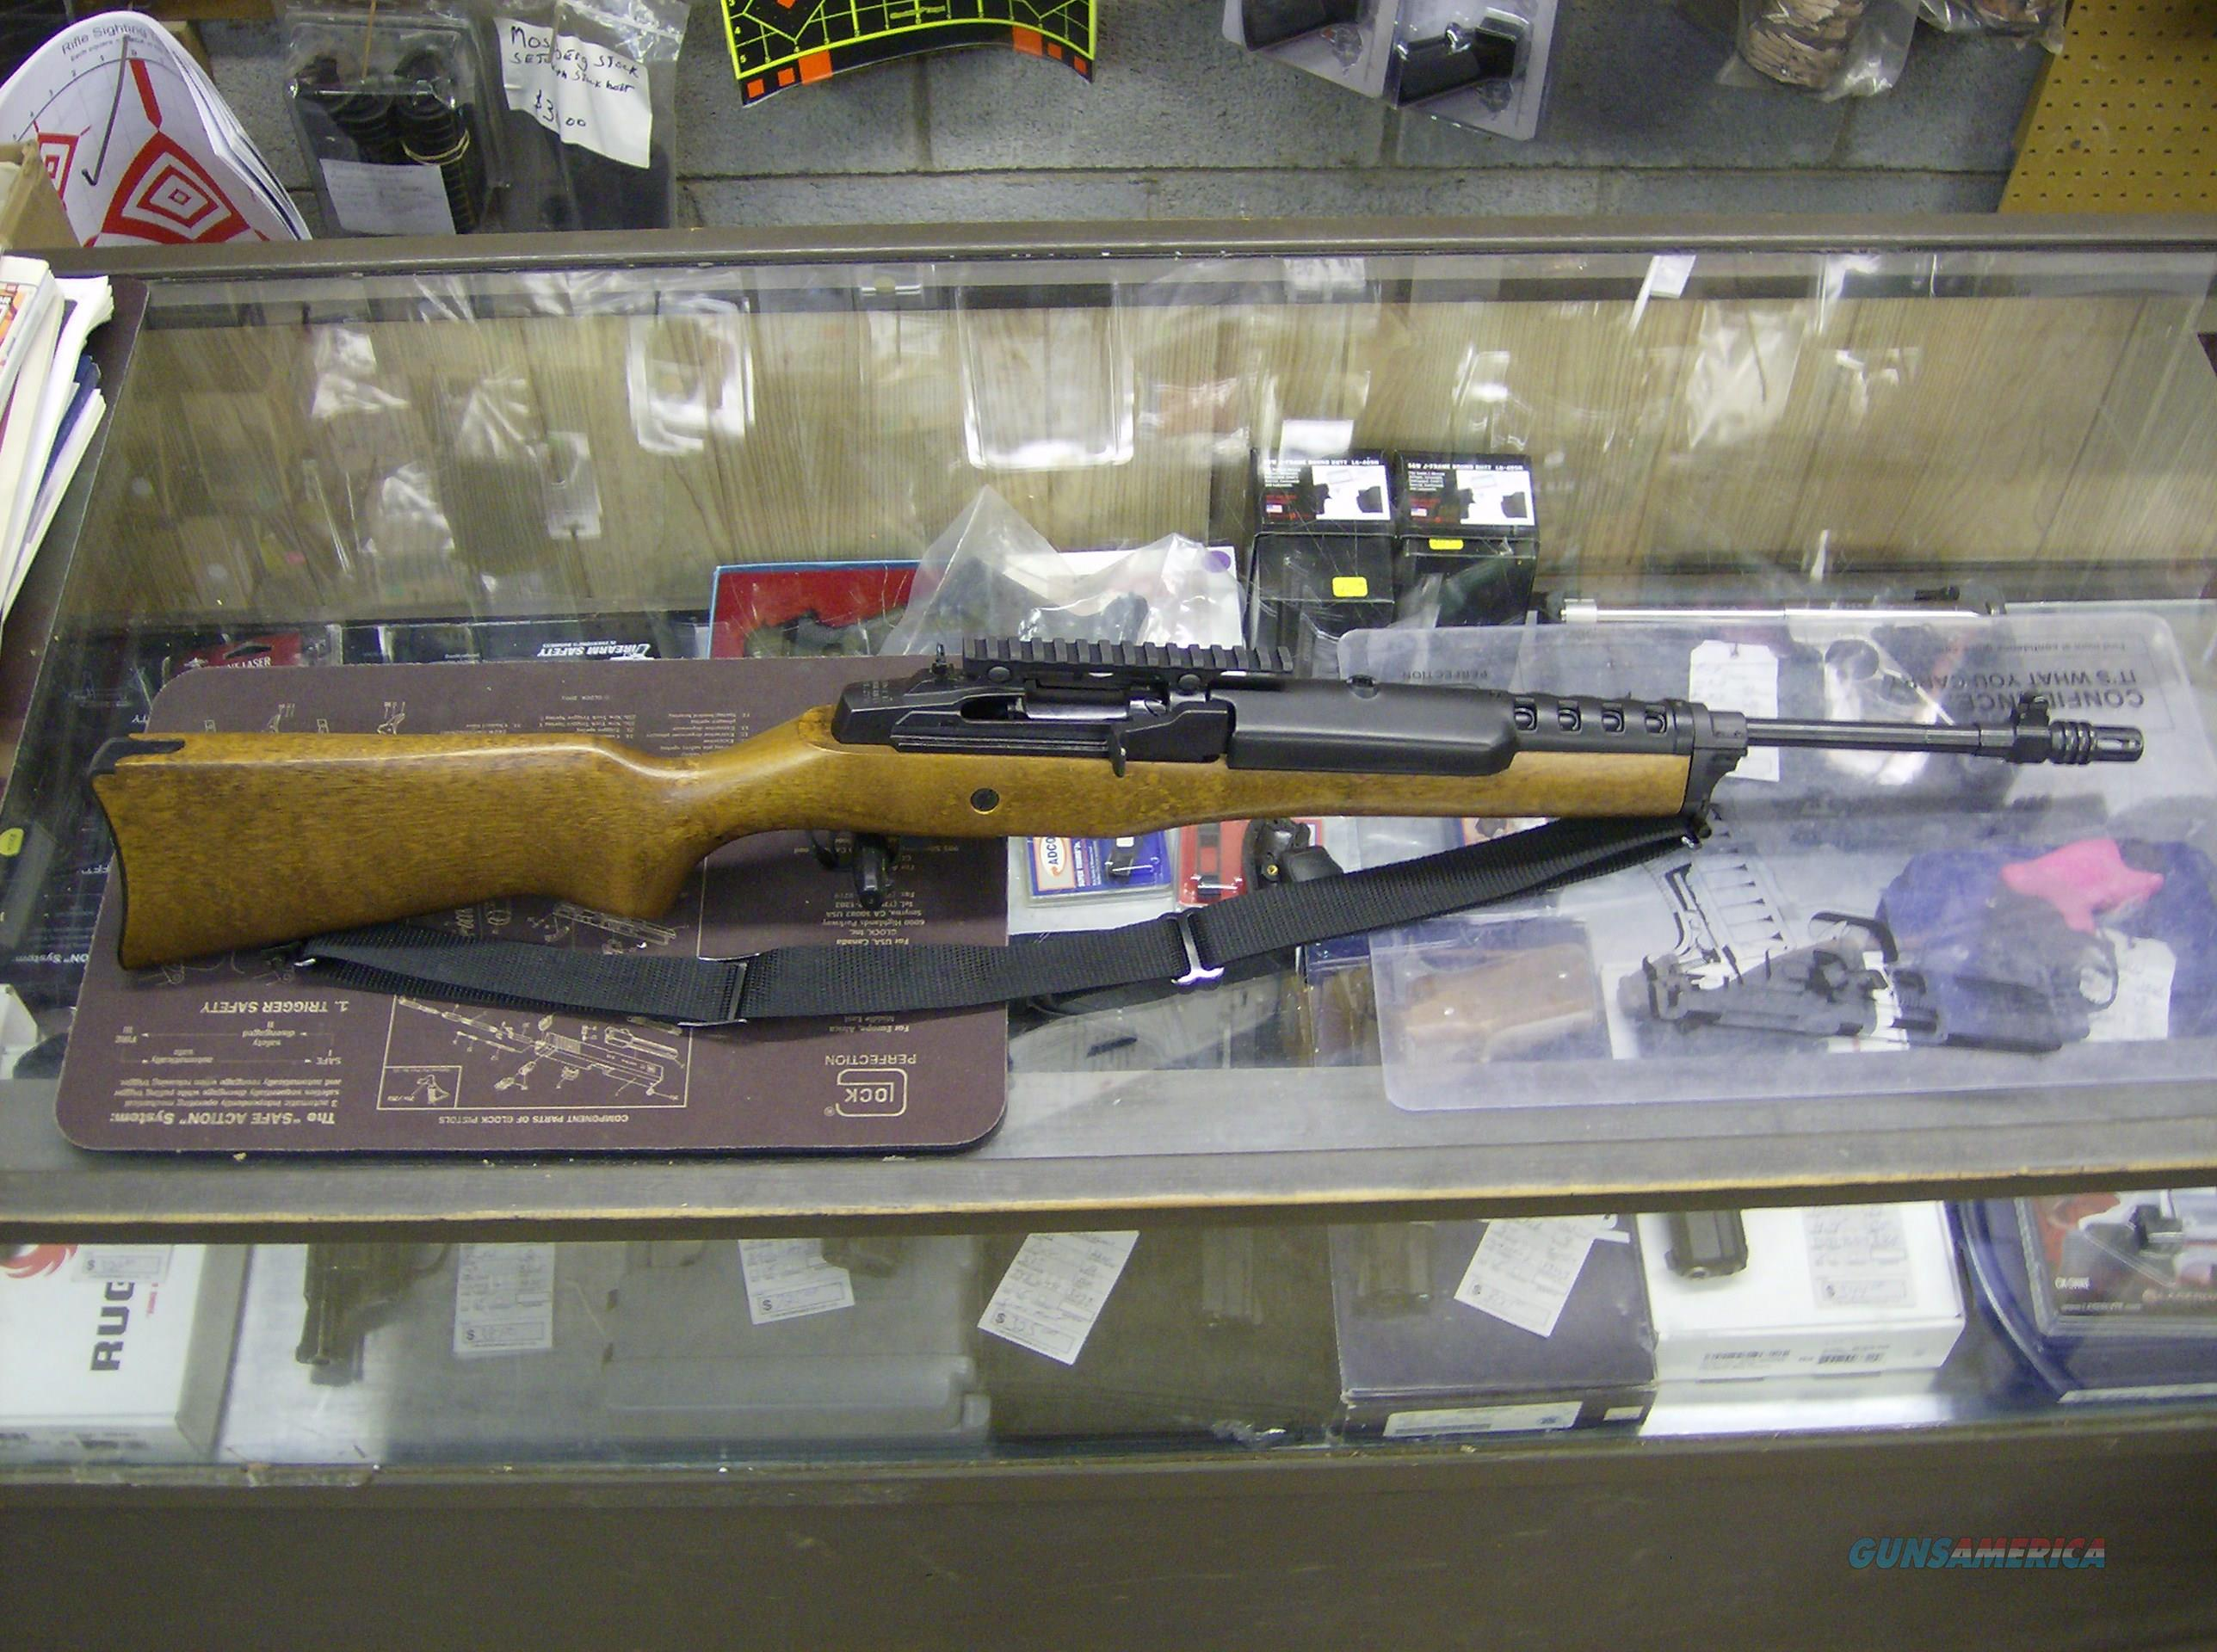 RUGER RANCH MINI 14 SEMI-AUTO RIFLE IN 223, MADE AT SOUTHPORT,CONN. PLANT  Guns > Rifles > Ruger Rifles > Mini-14 Type